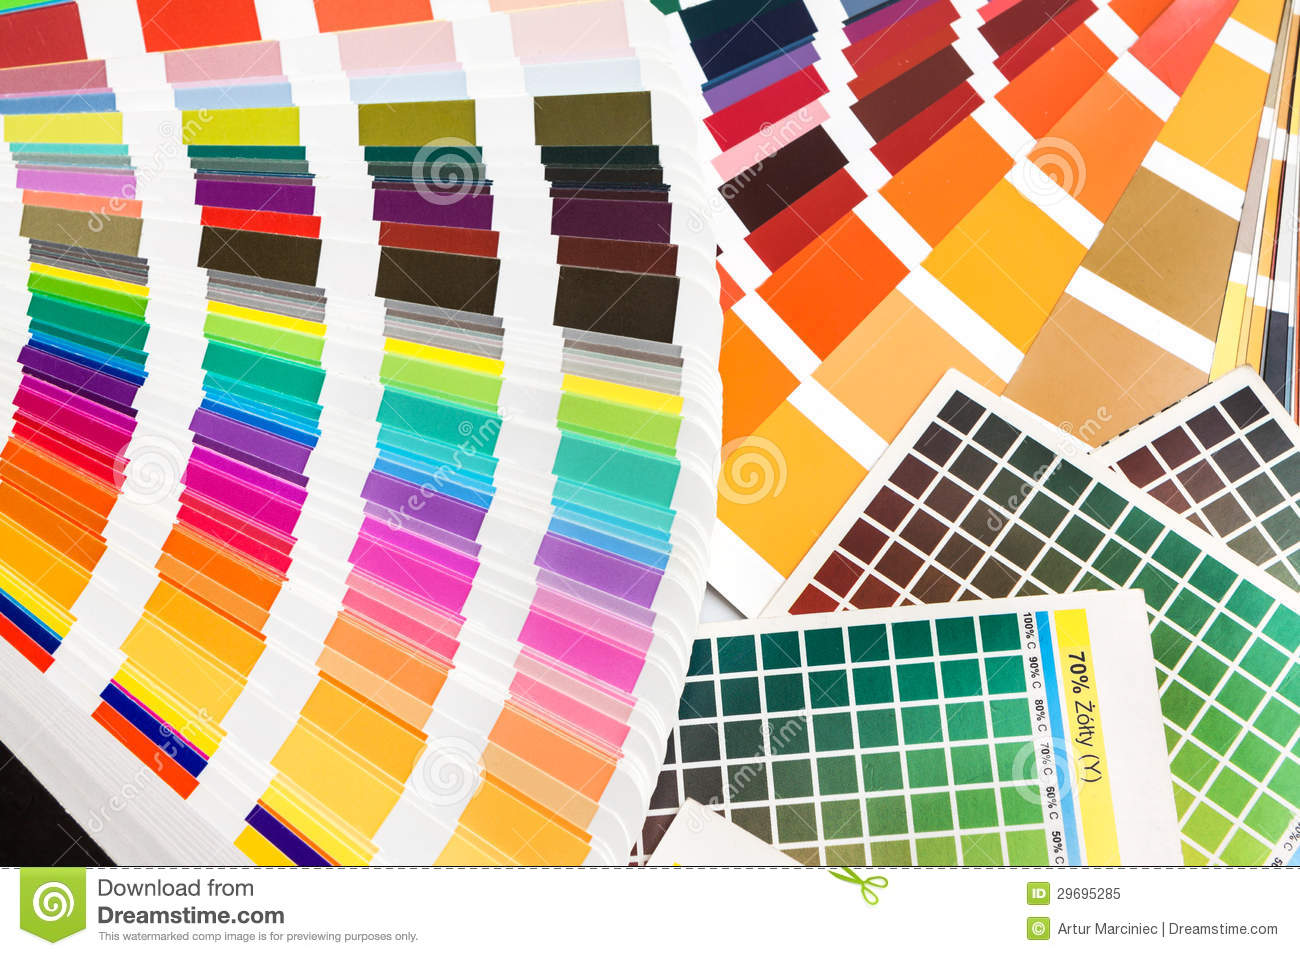 Ral Cmyk Pantone Cmyk Ral Color Swatches Stock Image Image Of Colourful